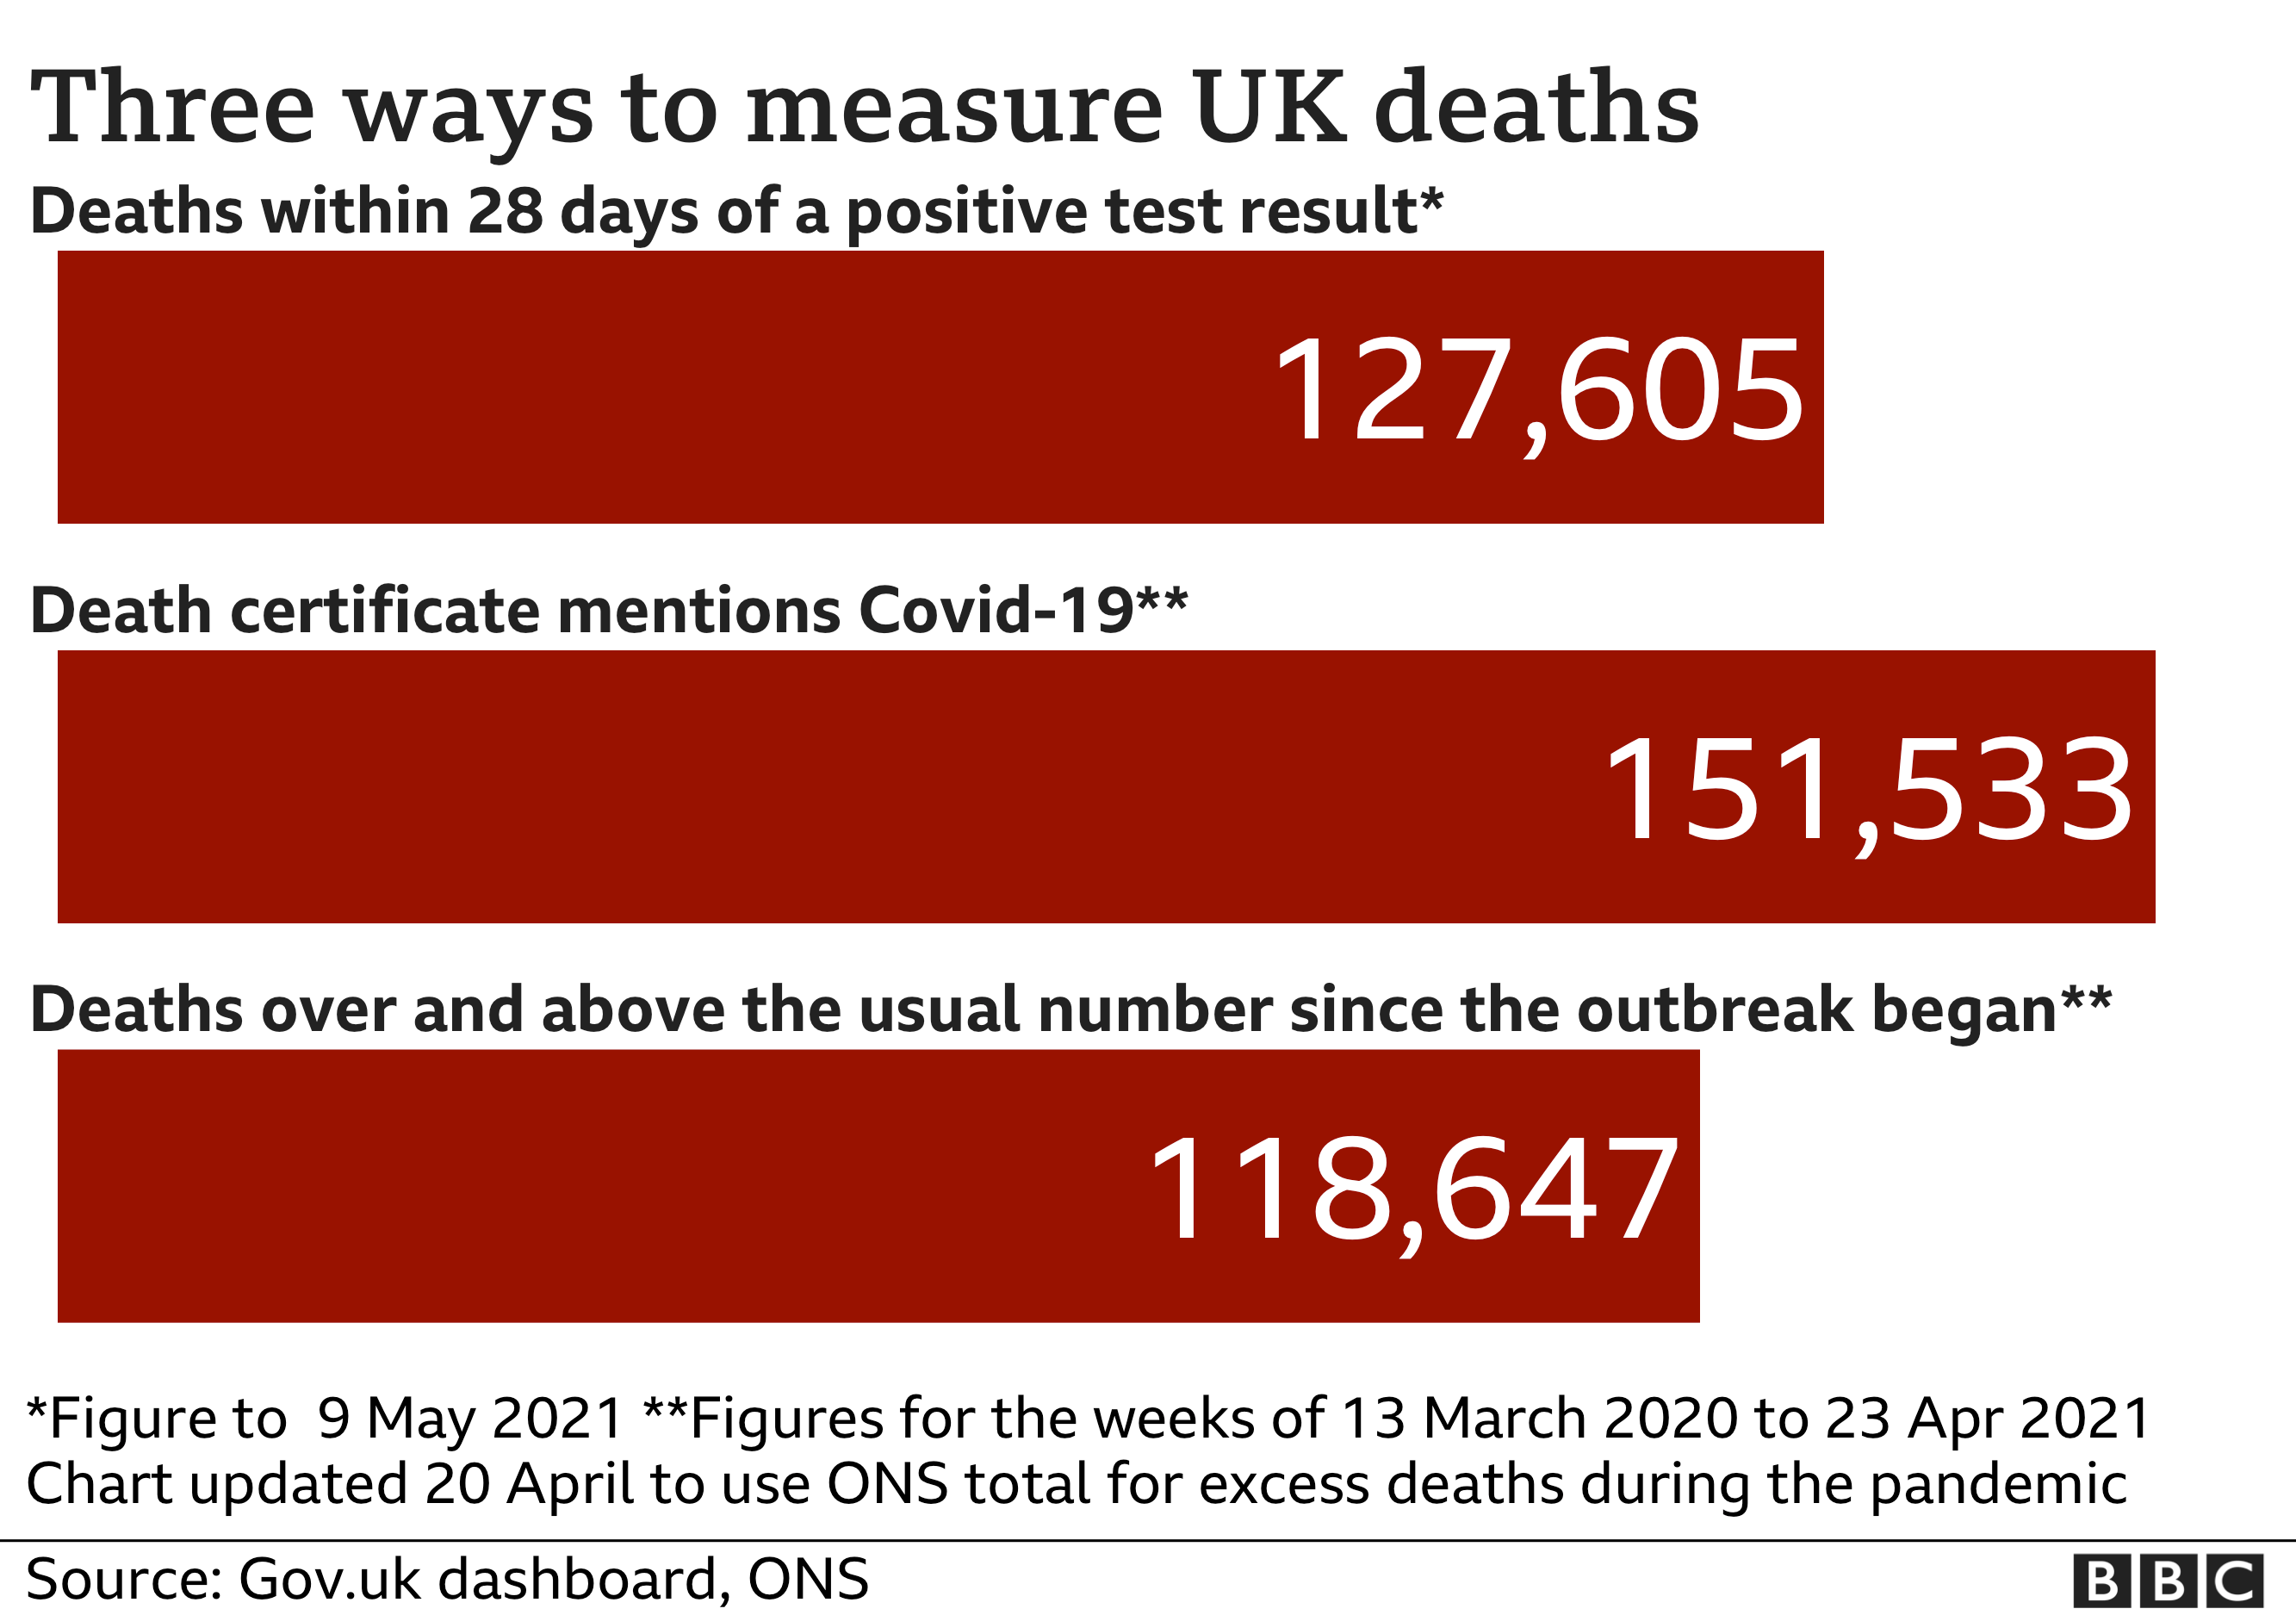 Chart shows three different death totals - government stats count every death within 28 days of Covid test - this total is now 127,605. The total number of deaths where death certificates mention Covid-19 is now 151,533, while the number of deaths above 'normal' for the time of year is 118,647. Updated 9 May